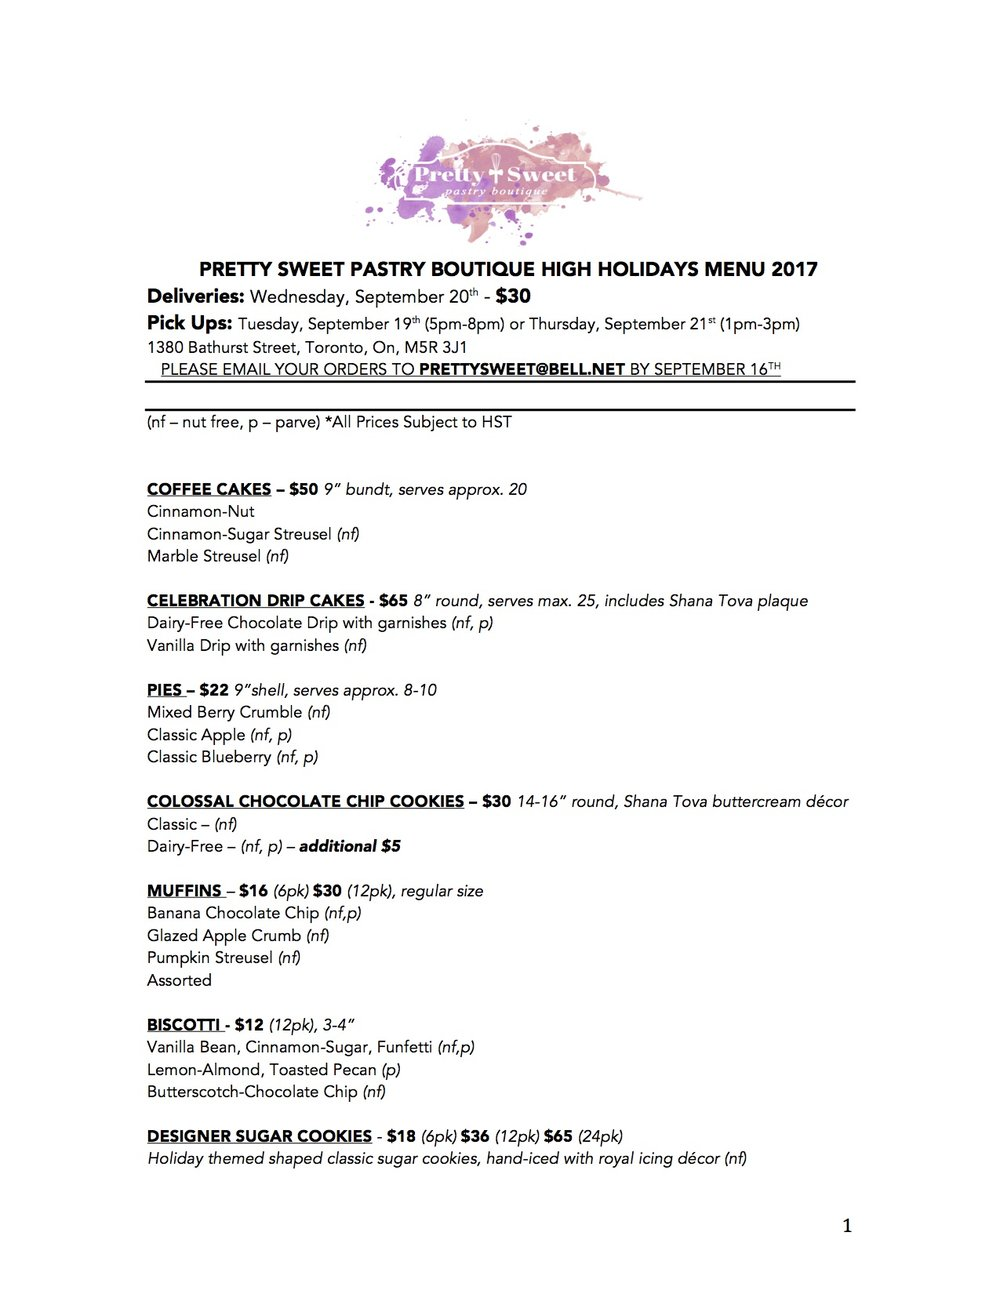 PRETTY SWEET PASTRY BOUTIQUE HIGH HOLIDAYS MENU 2017.jpg